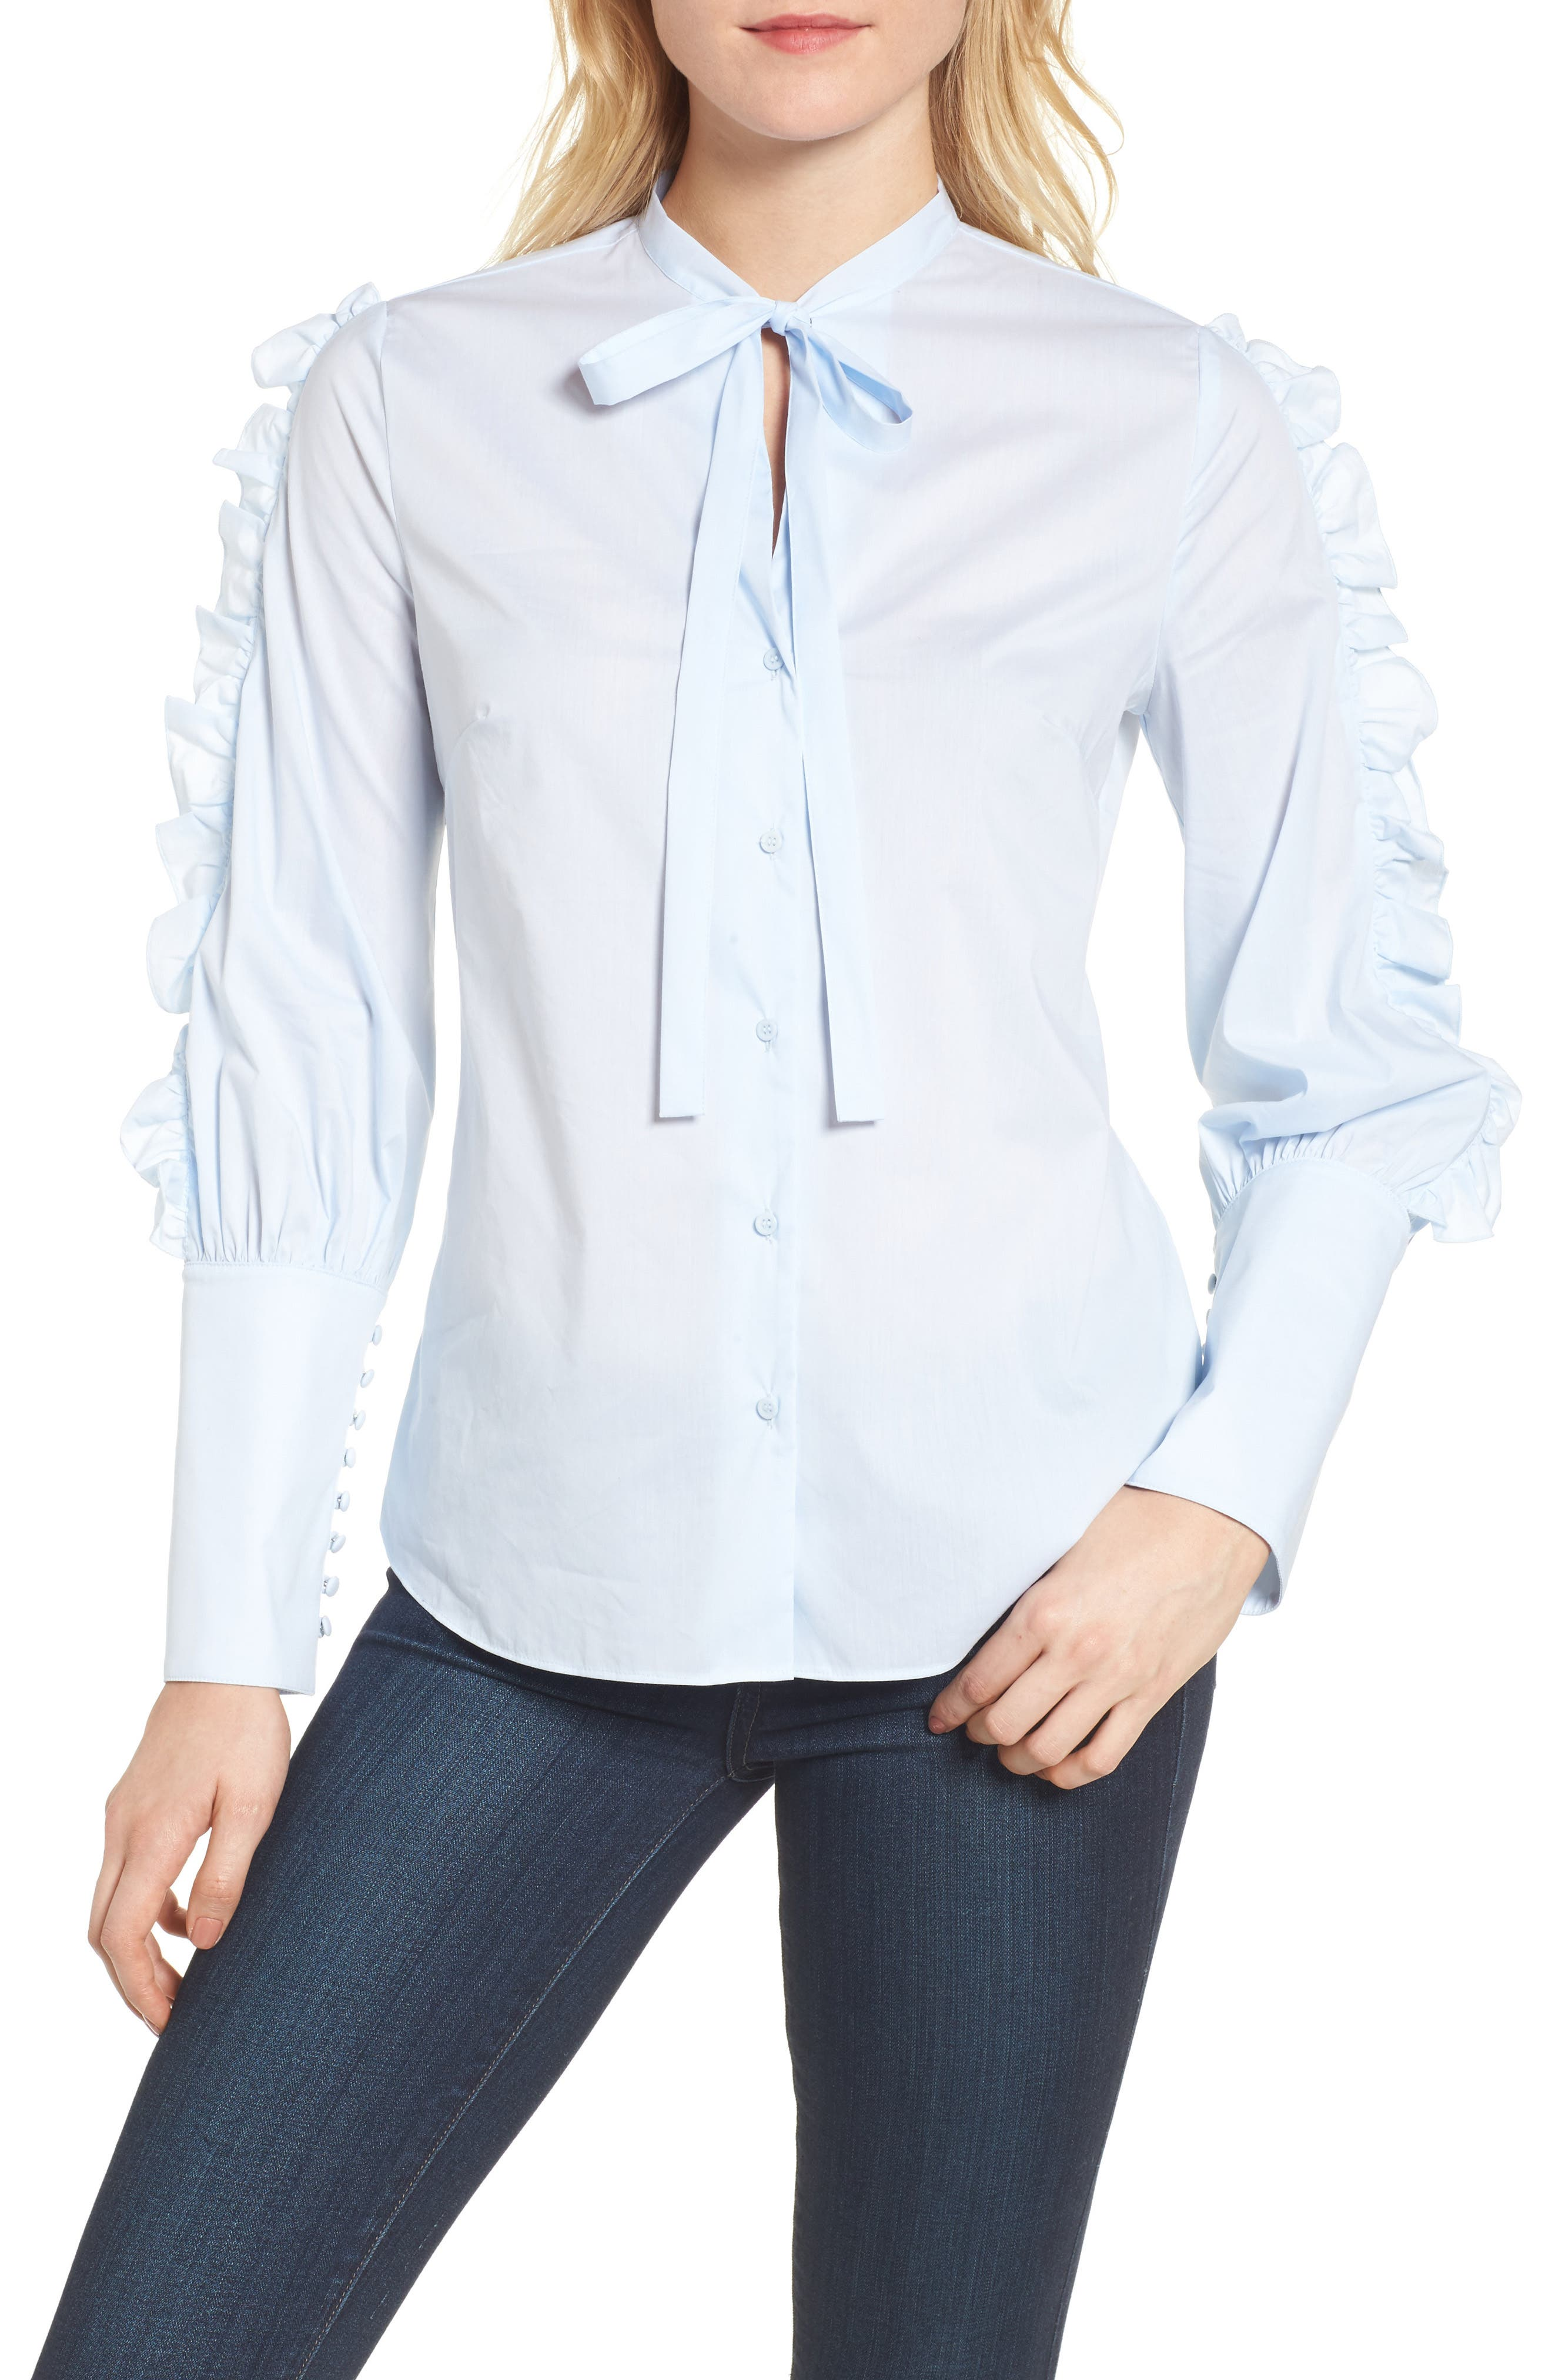 Ruffle Sleeve Poplin Blouse,                             Main thumbnail 1, color,                             450